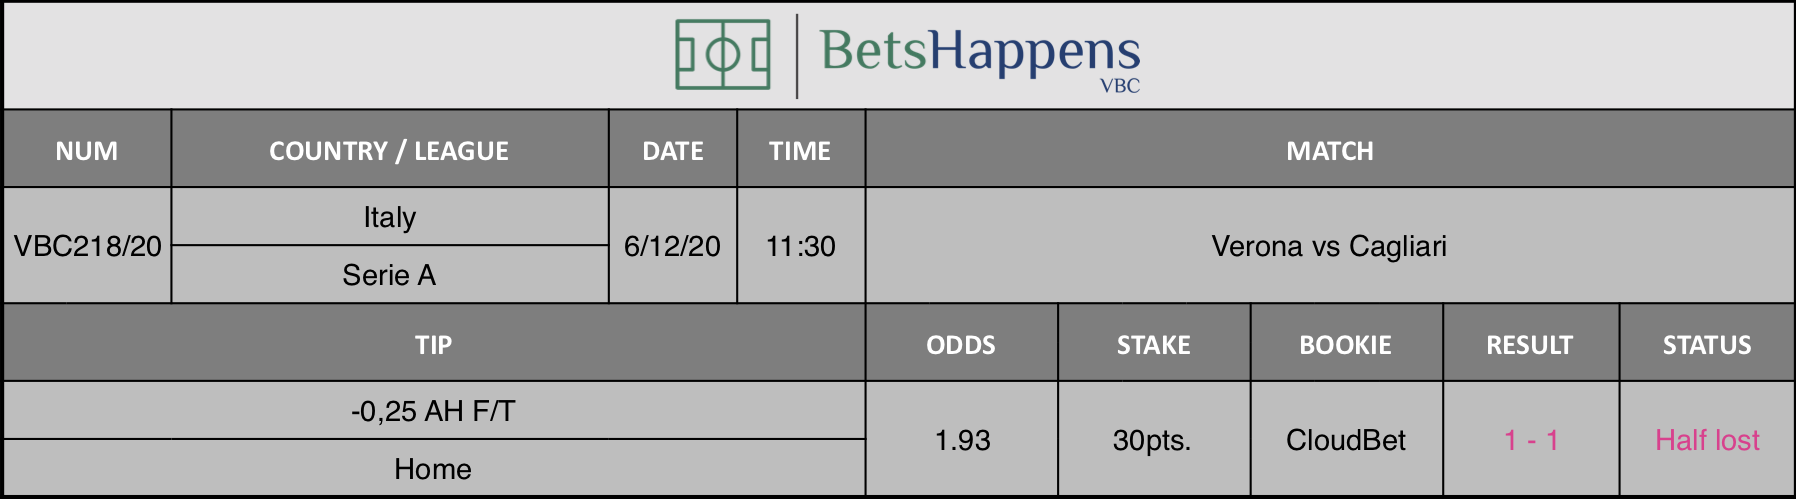 Results of our tip for the Verona vs Cagliari match where -0,25 AH F/T  Home is recommended.